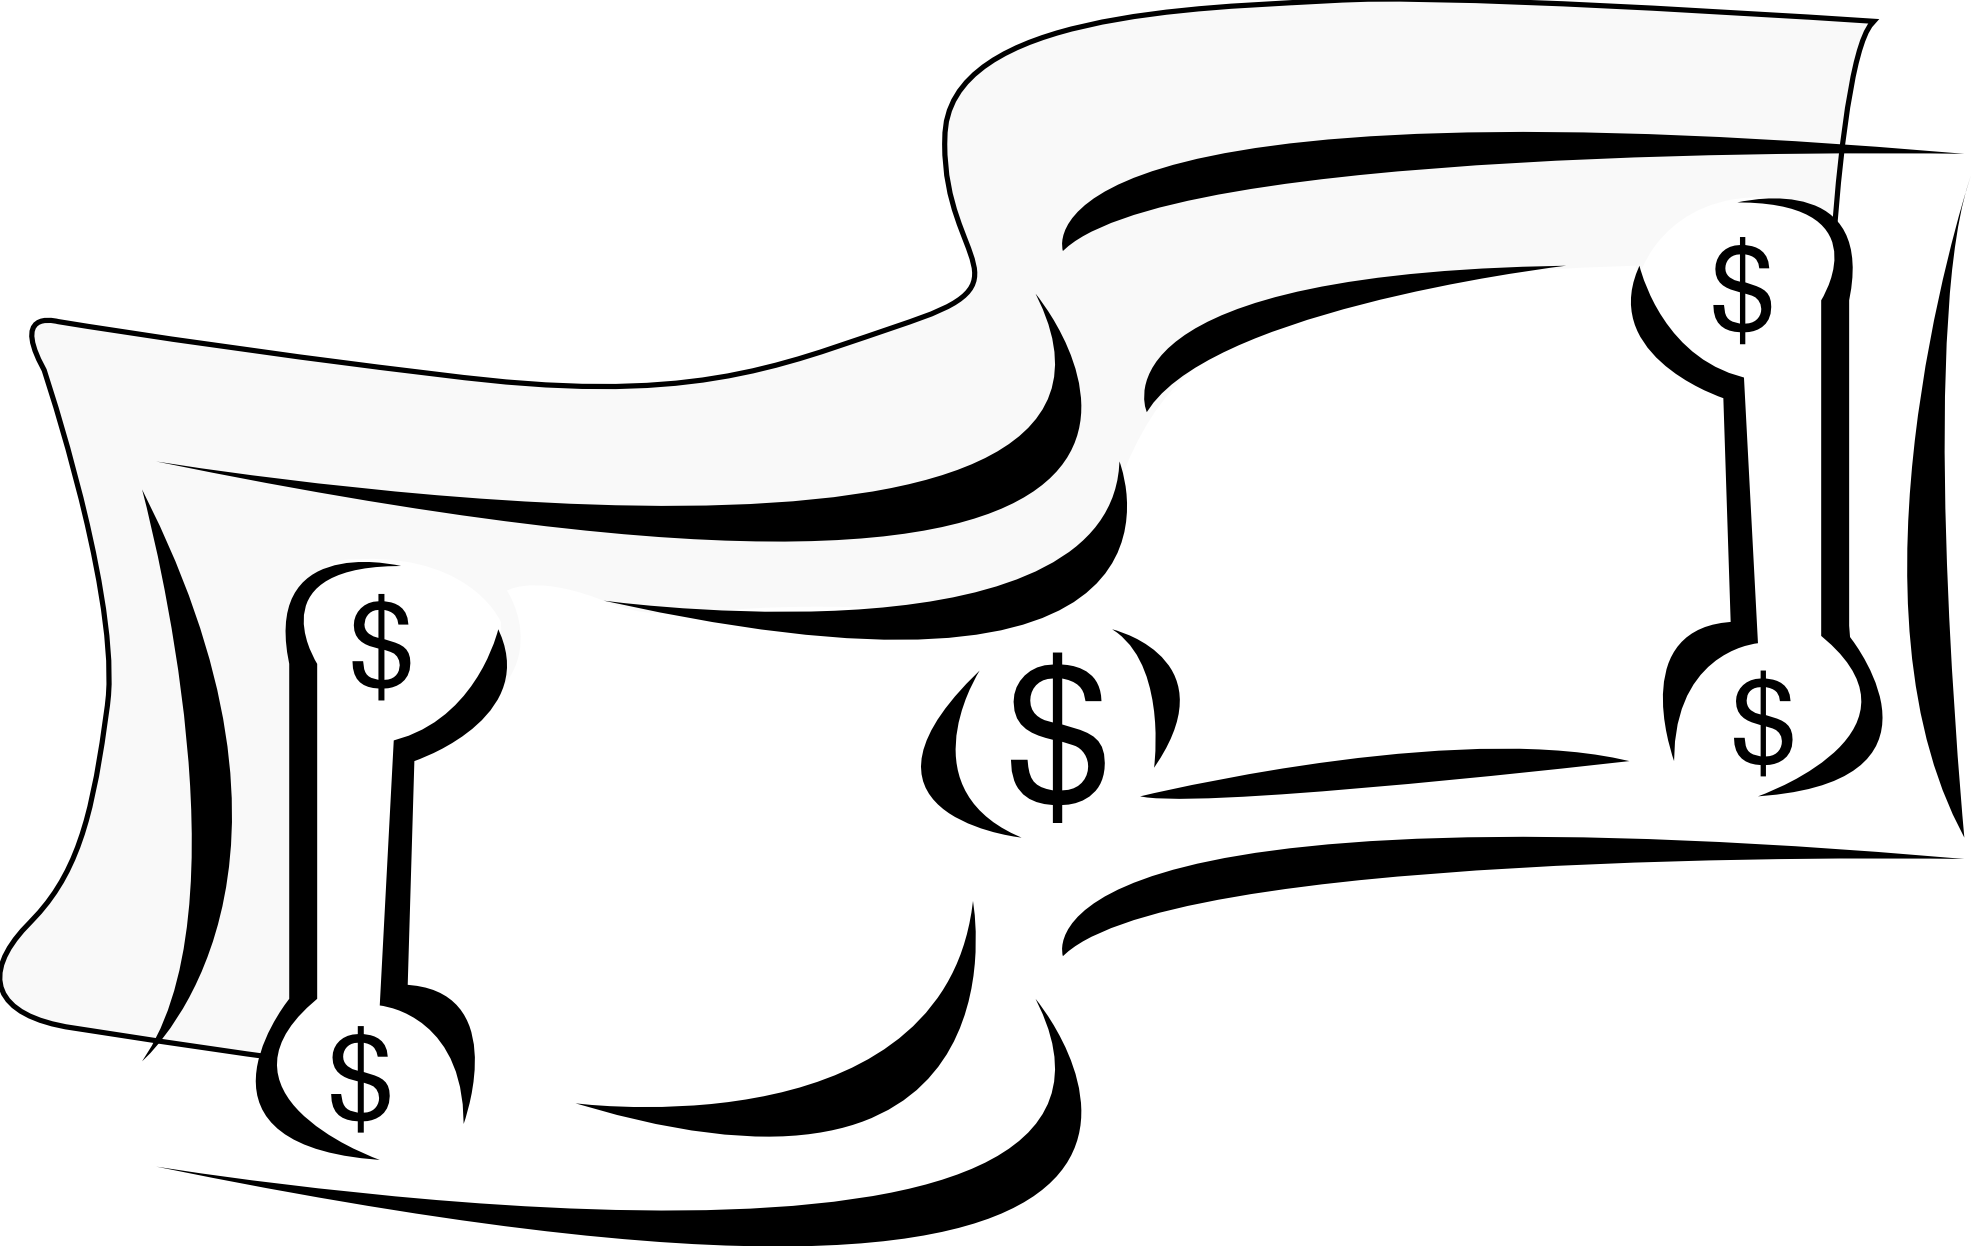 picture transparent stock Bill clipart. Dollar bills sign black.